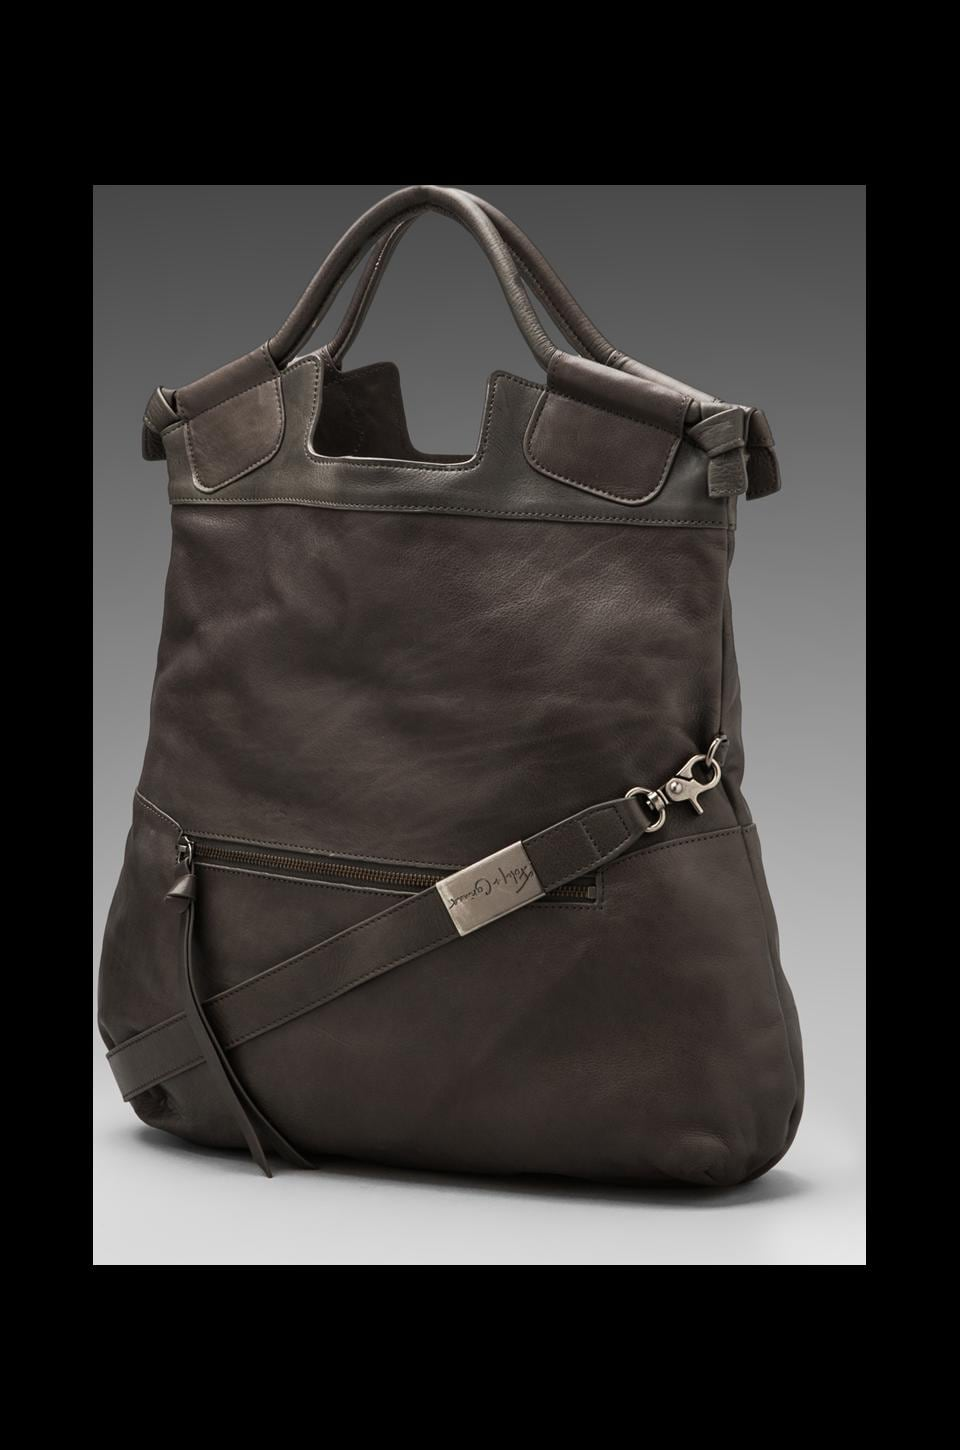 Foley + Corinna Mid City Bag in Fog